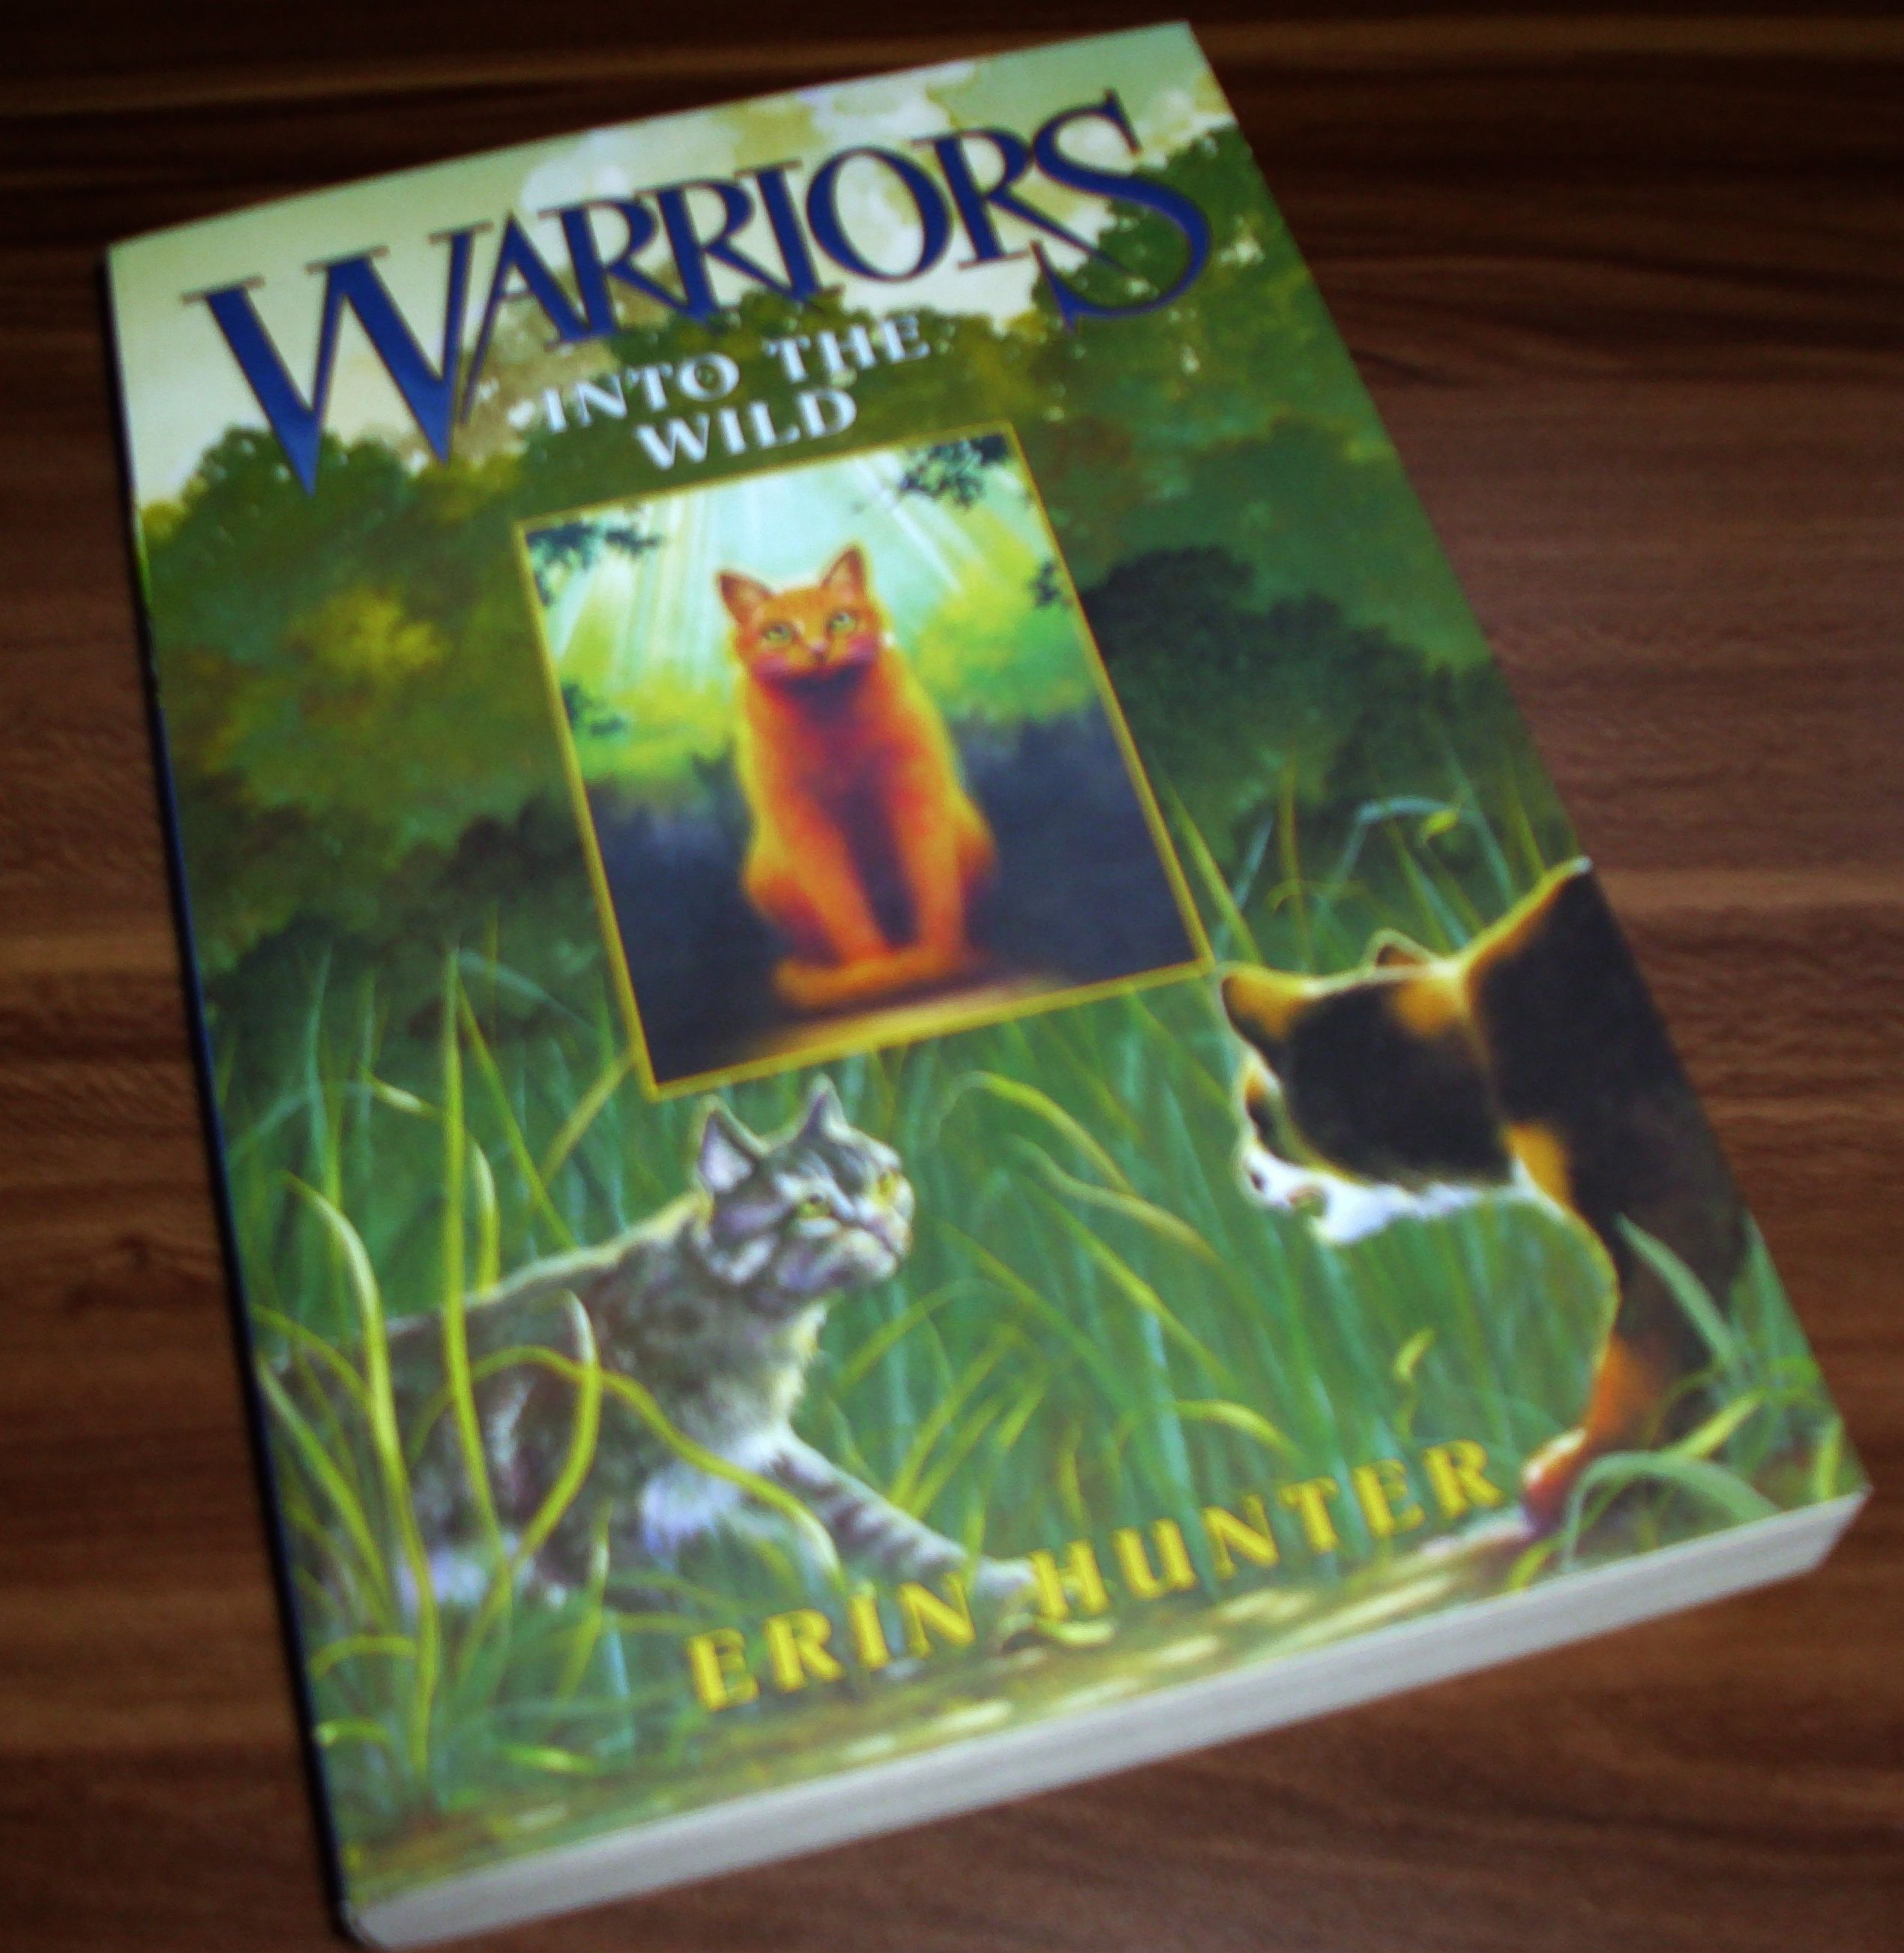 What Genre Is Warriors Into The Wild